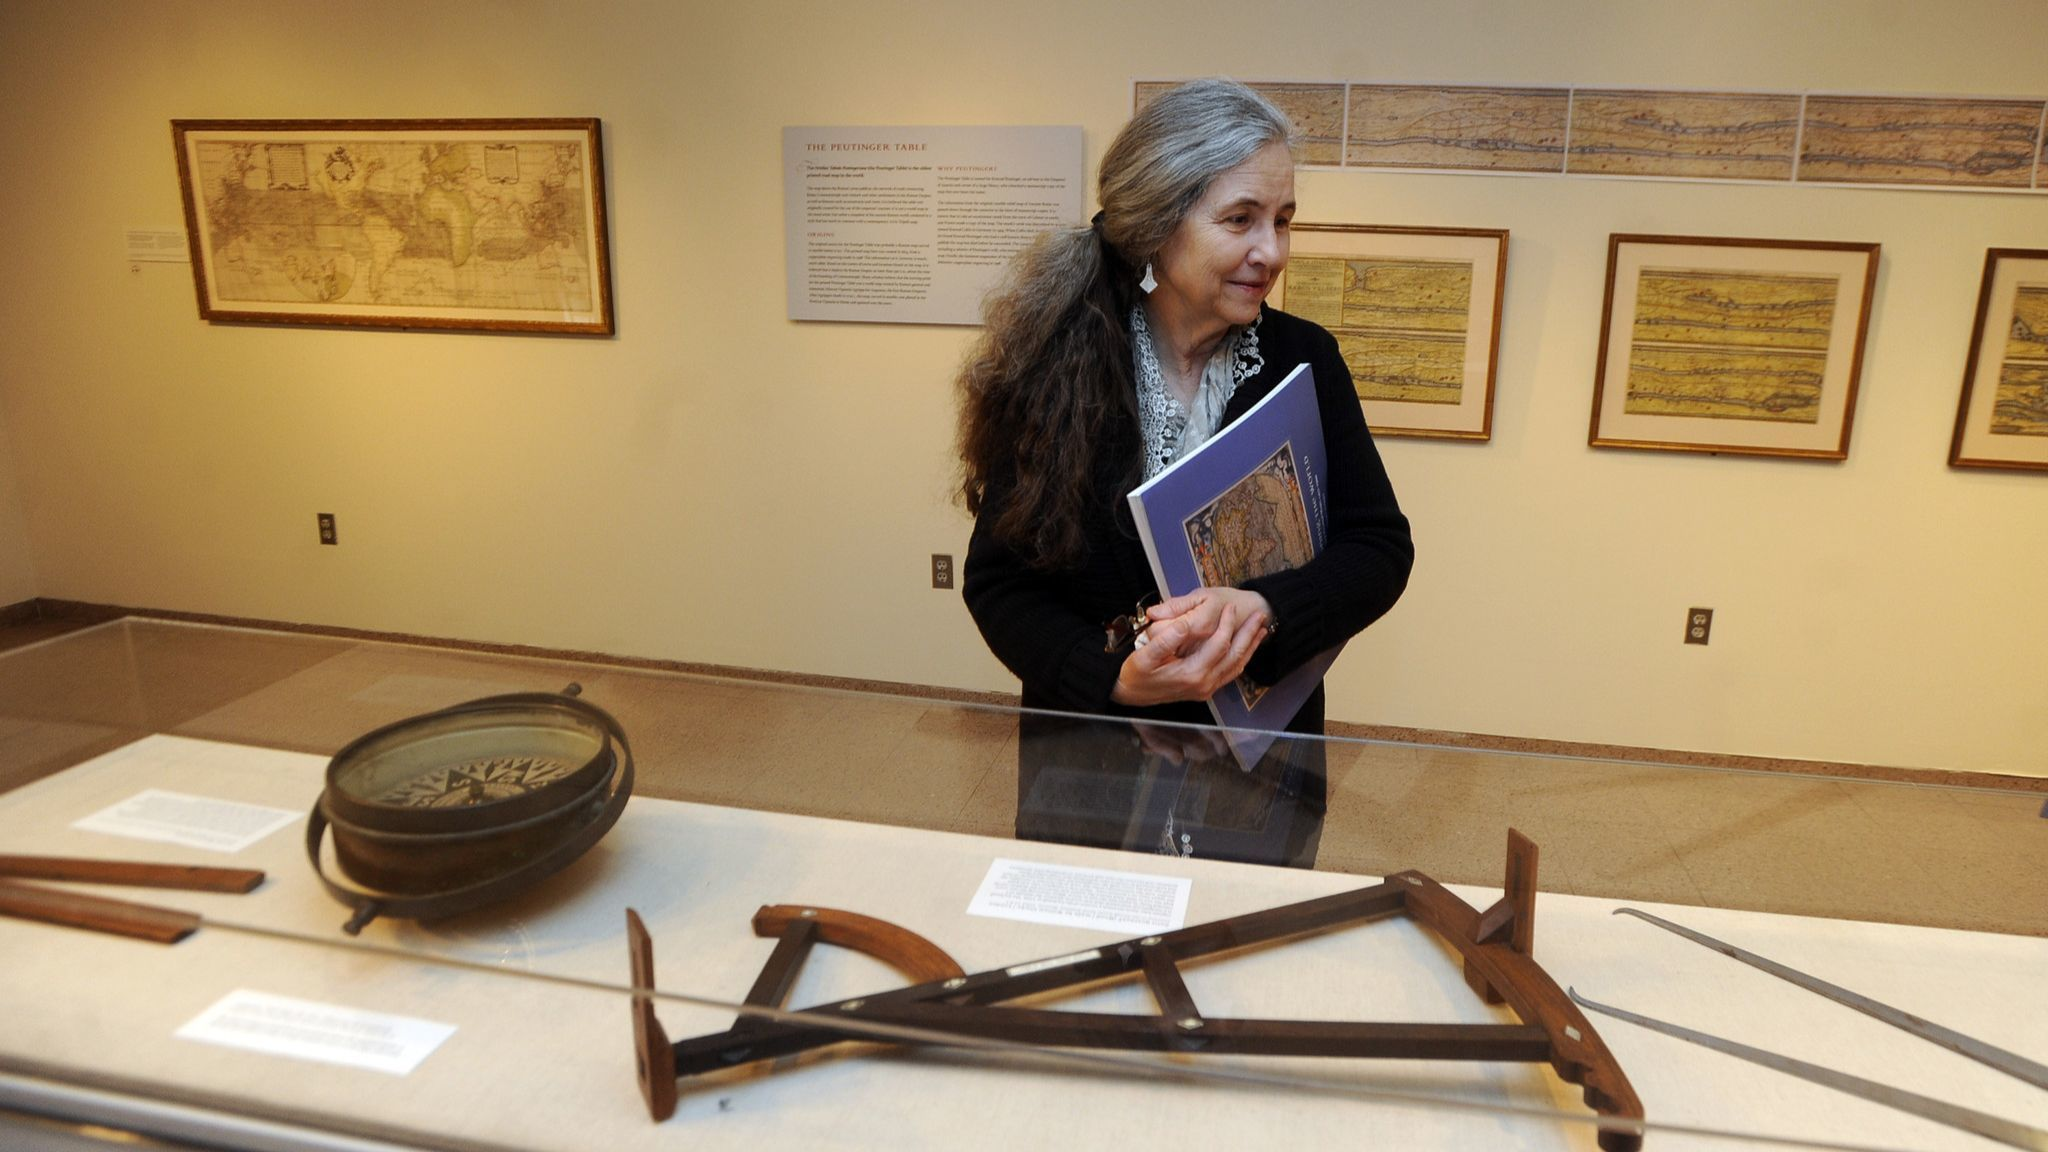 Annapolis, MD--March 13, 2013--Art Educator Lucinda Edinberg looks at navigational aids which are on